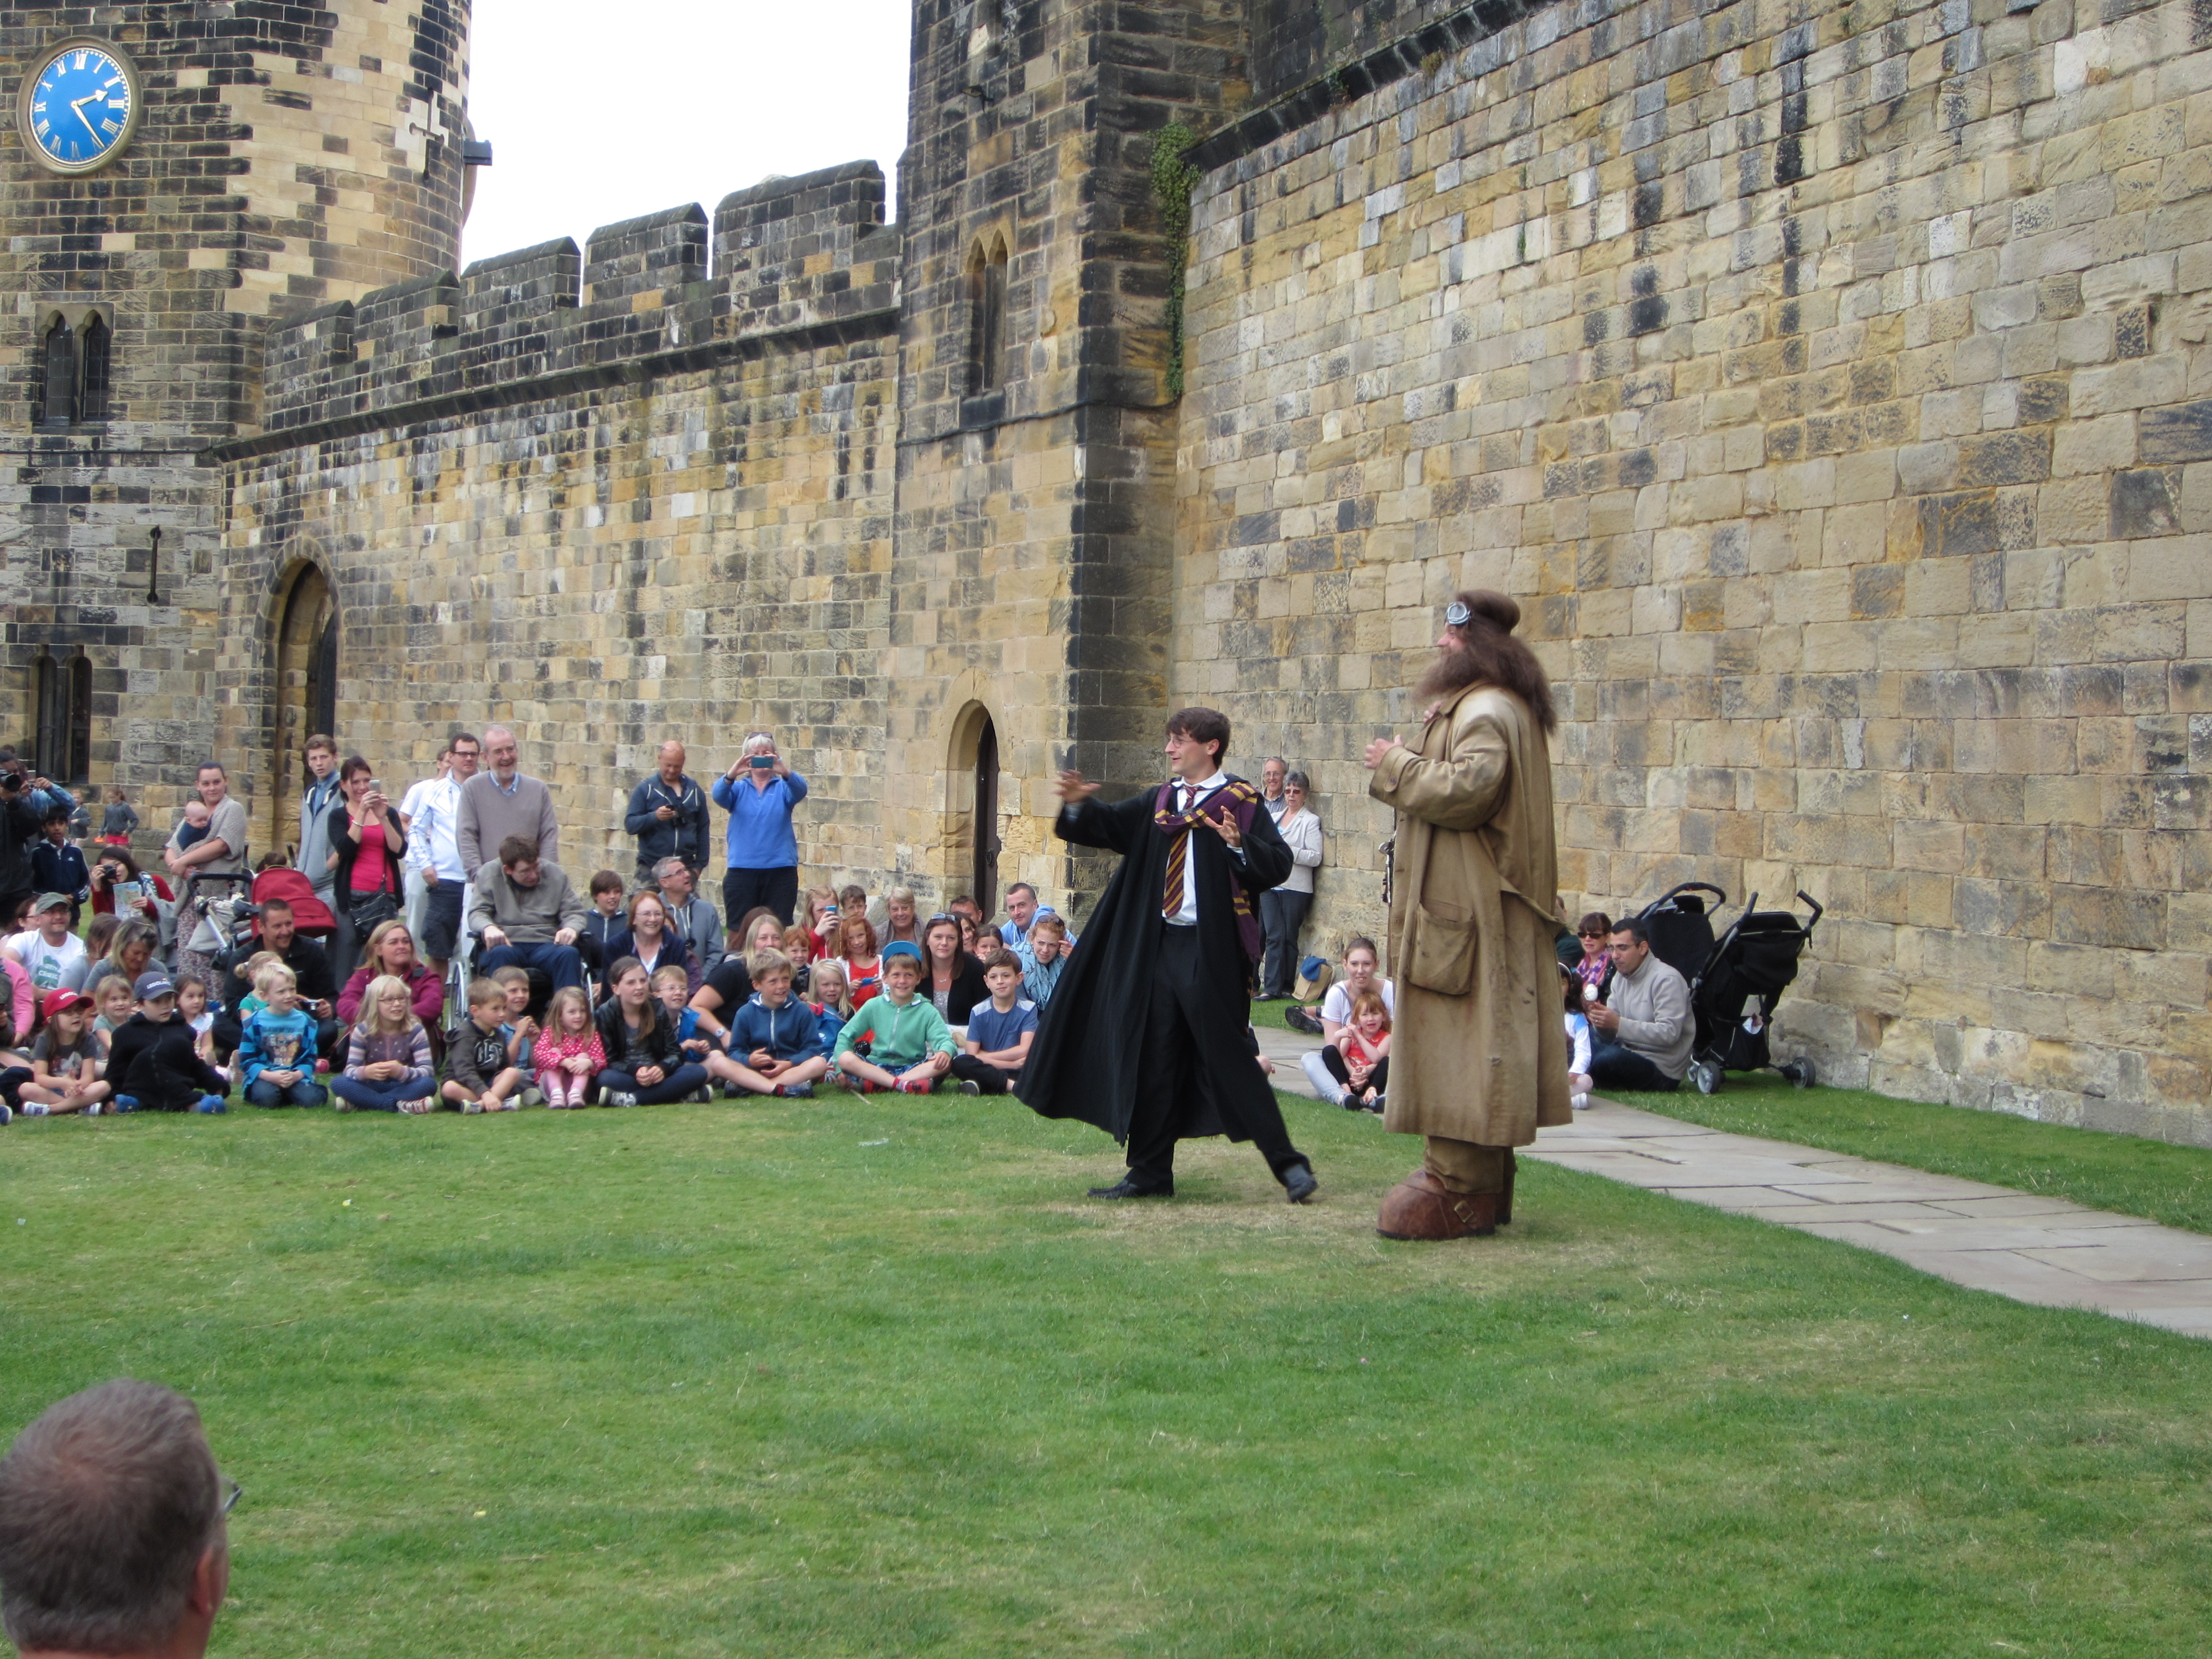 Alnwick Castle: James McDonald, Duchess of Northumberland Harry potter alnwick castle pictures